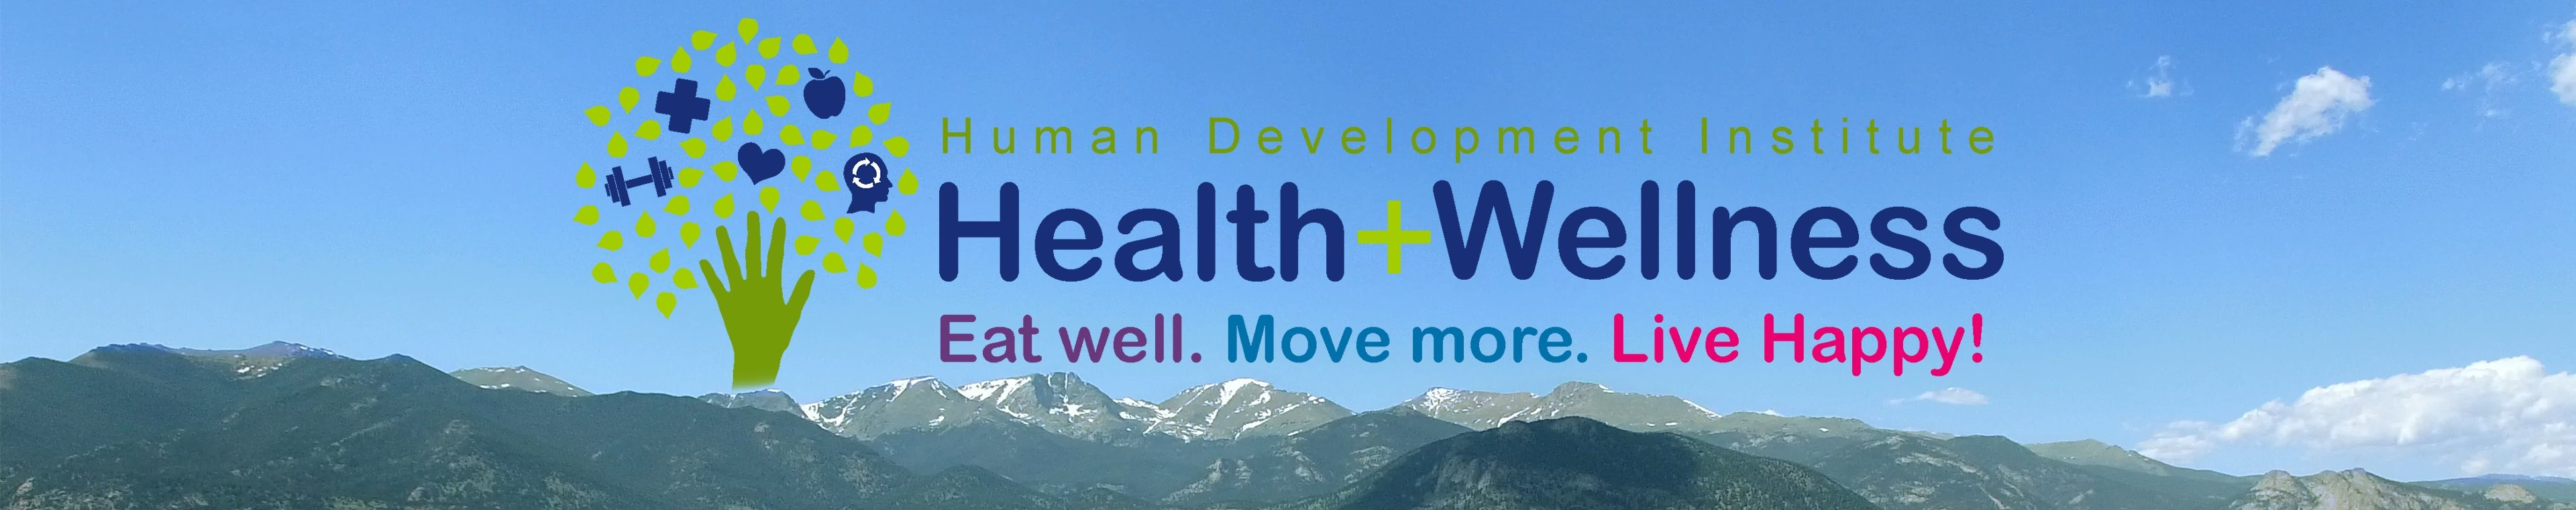 Health and Wellness header image with logo and mountains 2